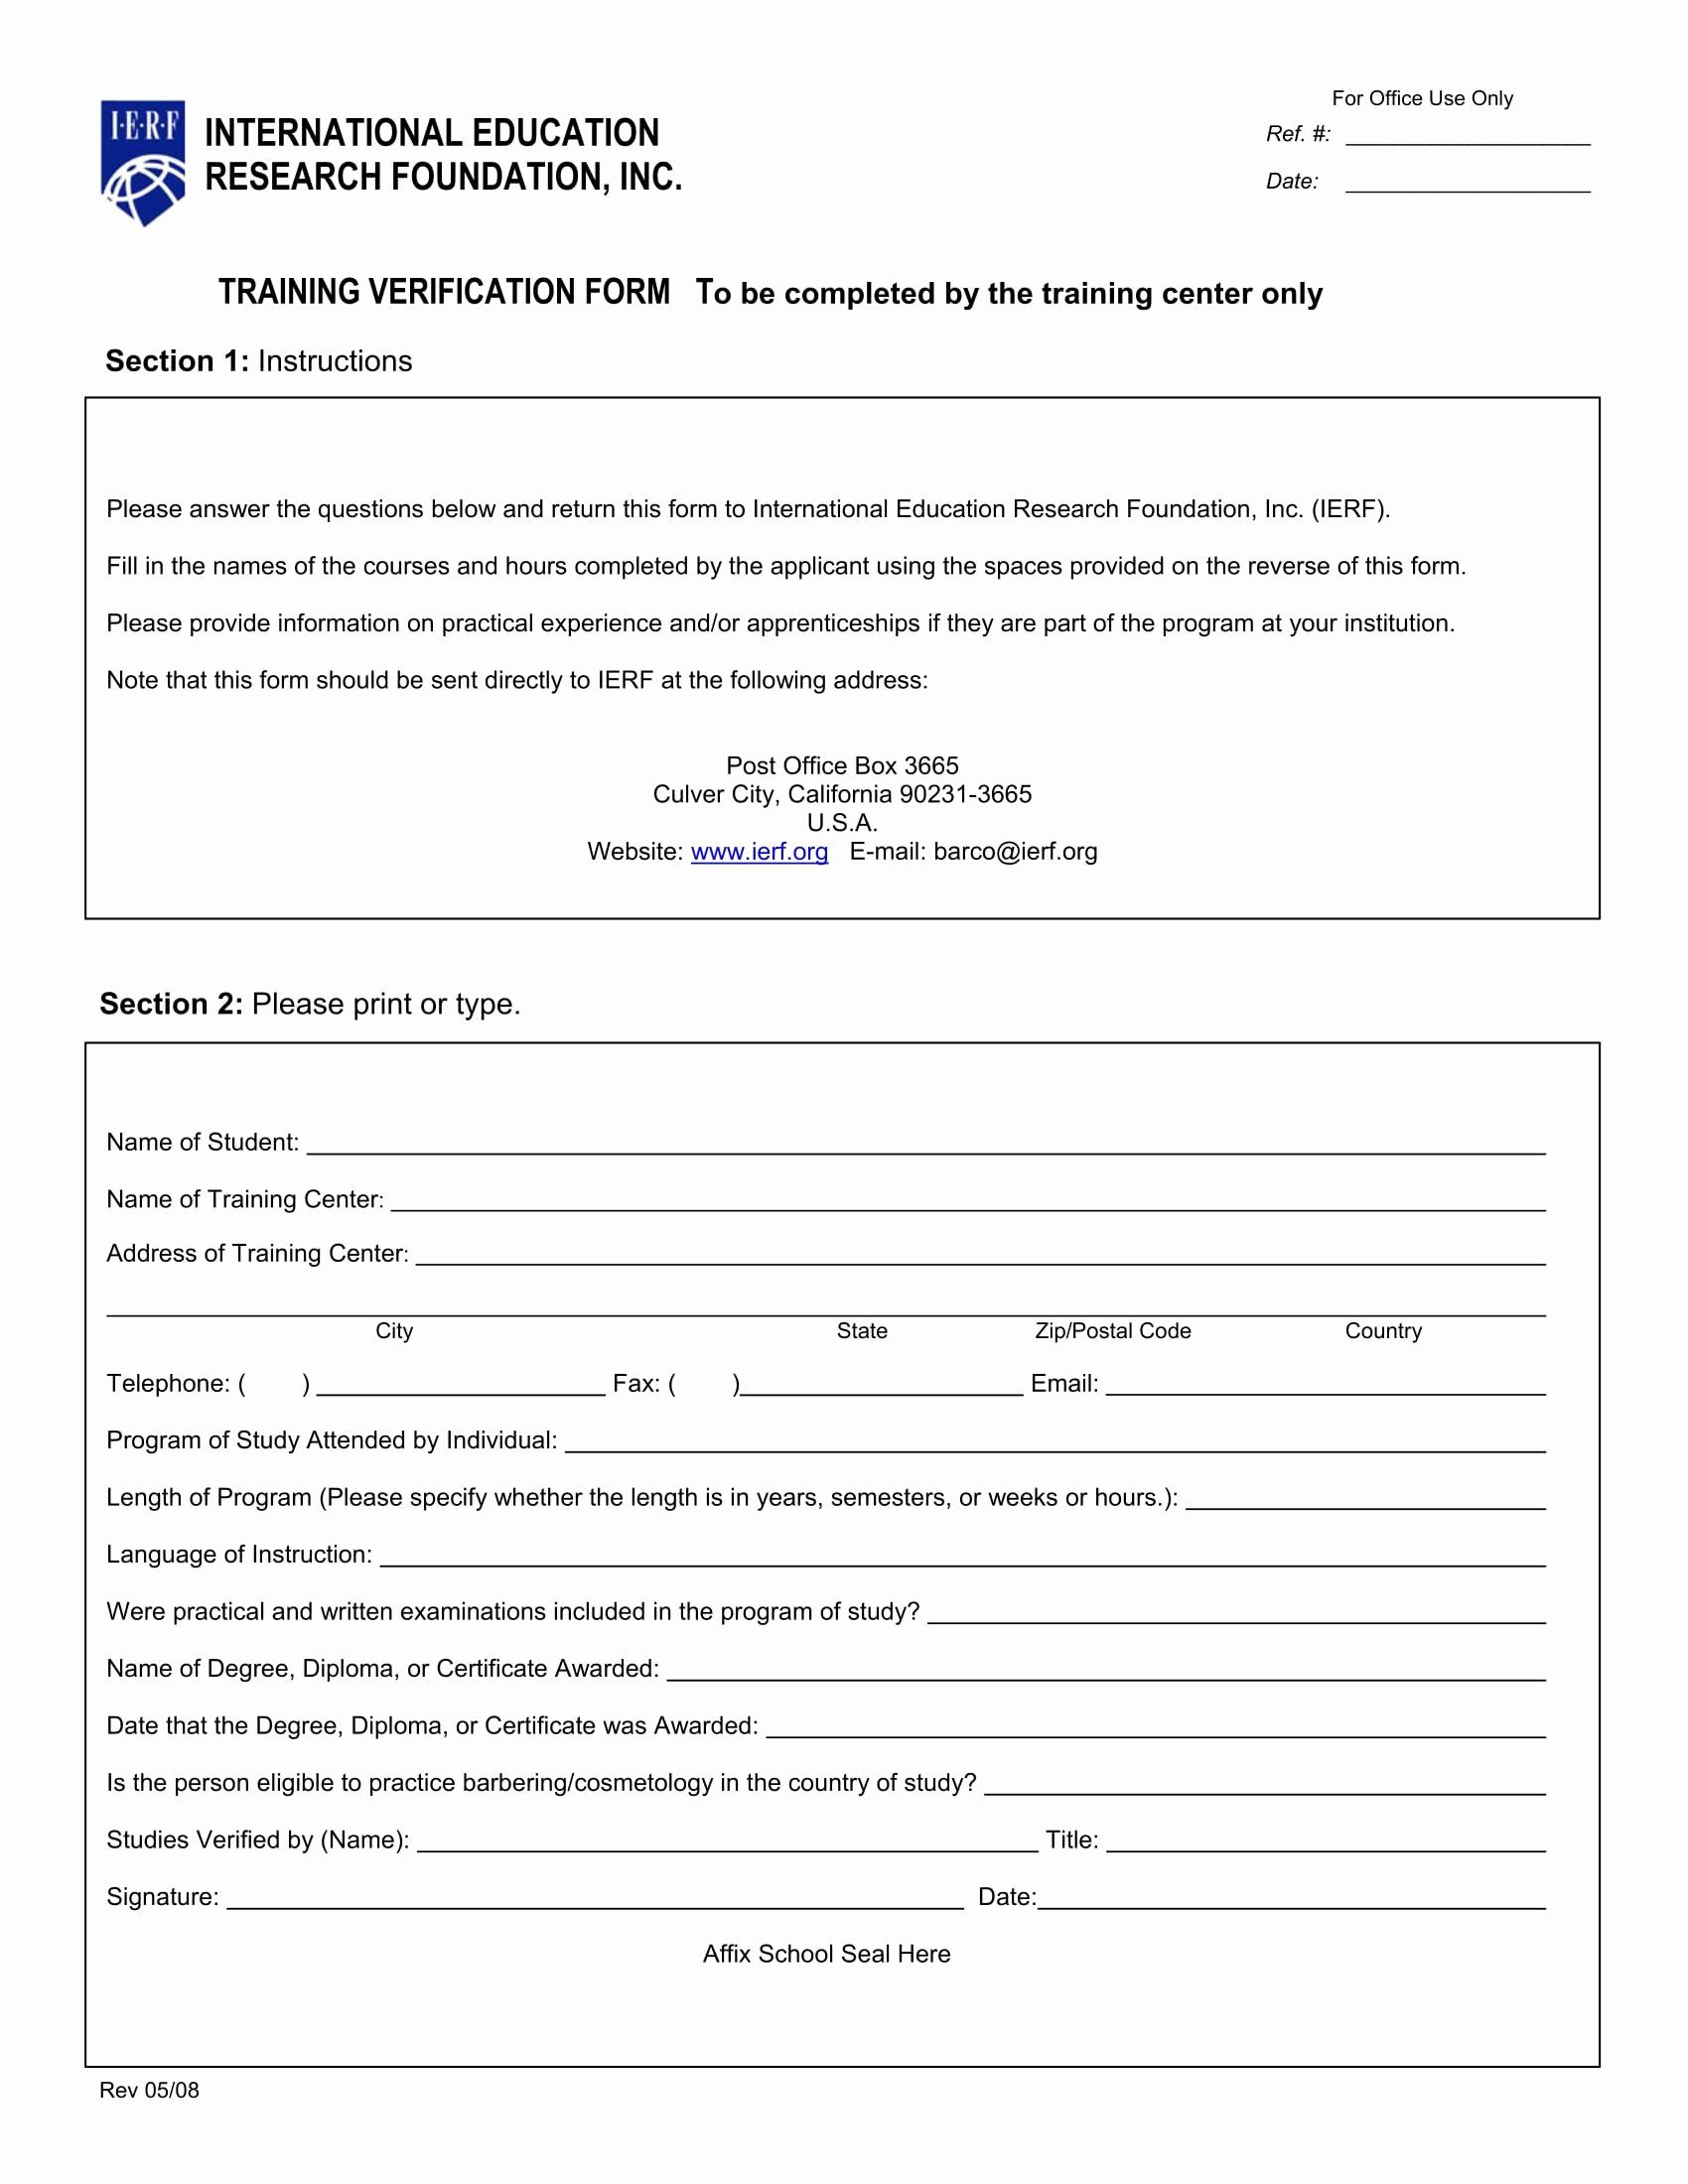 Training Request Form Template Luxury Training Verification Form Samples Definition Uses And Lettering Templates Letter Sample